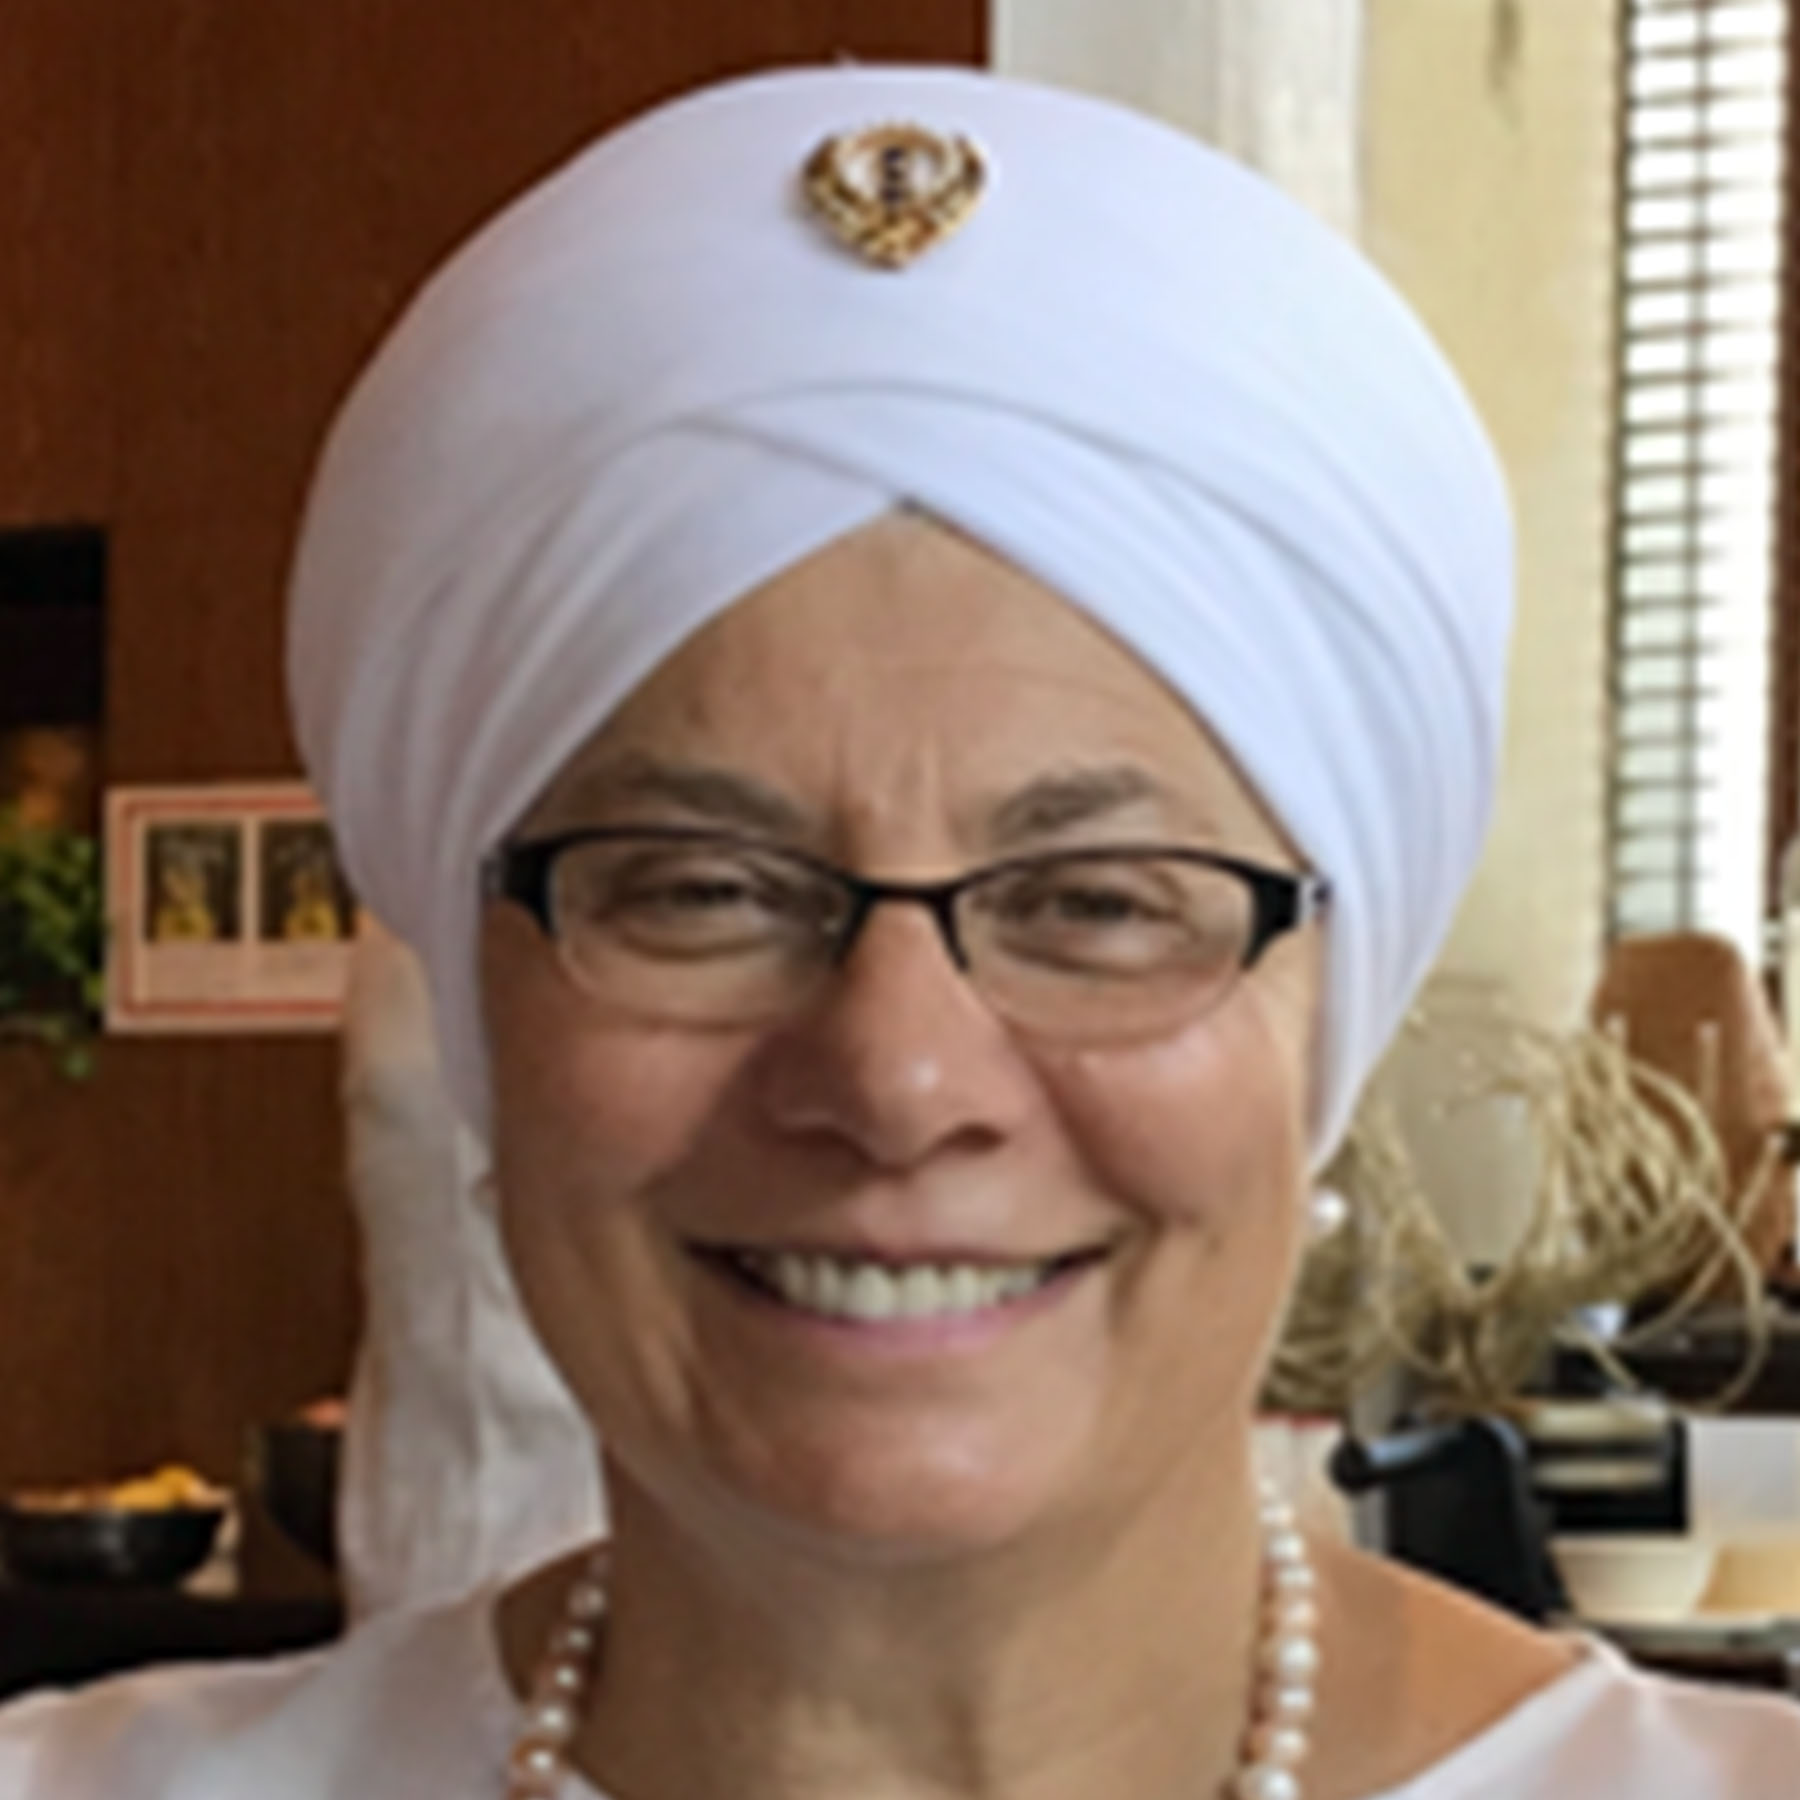 """Tarn Taran Kaur Khalsa (Lead)   Tarn Taran Kaur Khalsa began teaching Kundalini Yoga internationally in 1972 when Yogi Bhajan asked her and her husband, Tarn Taran Singh, to move to the Netherlands. In 1975, the couple relocated to Hamburg, Germany where they opened the first German Kundalini Yoga School and Ashram. In 1976, they established the first German Kundalini Yoga Teacher Training program and German Kundalini Yoga Teacher Association. Tarn Taran Kaur has dedicated her life to teaching Kundalini Yoga, using Yogi Bhajan's mato: """"A teacher must train the student to be TEN times greater than his/her self!"""" She was recognized personally by Yogi Bhajan as a Level One and Level Two Teacher Trainer. She is also an International KRI Teacher Trainer Mentor, and a founding member of TTEC (Teacher Training Executive Council). She authored the Conscious Pregnancy manuals and training programs. Her wit and wisdom touch the hearts of all. She has the sensitive art of guiding an individual through the process of awakening his/her inner grace, strength and potential; the subtle skill which she learned under the direct guidance of Yogi Bhajan for over 30 years. Today she shares the teaching of Kundalini Yoga around the globe, with her home base in New Mexico with her husband, Tarn Taran Singh.  www.kundaliniwomen.org"""